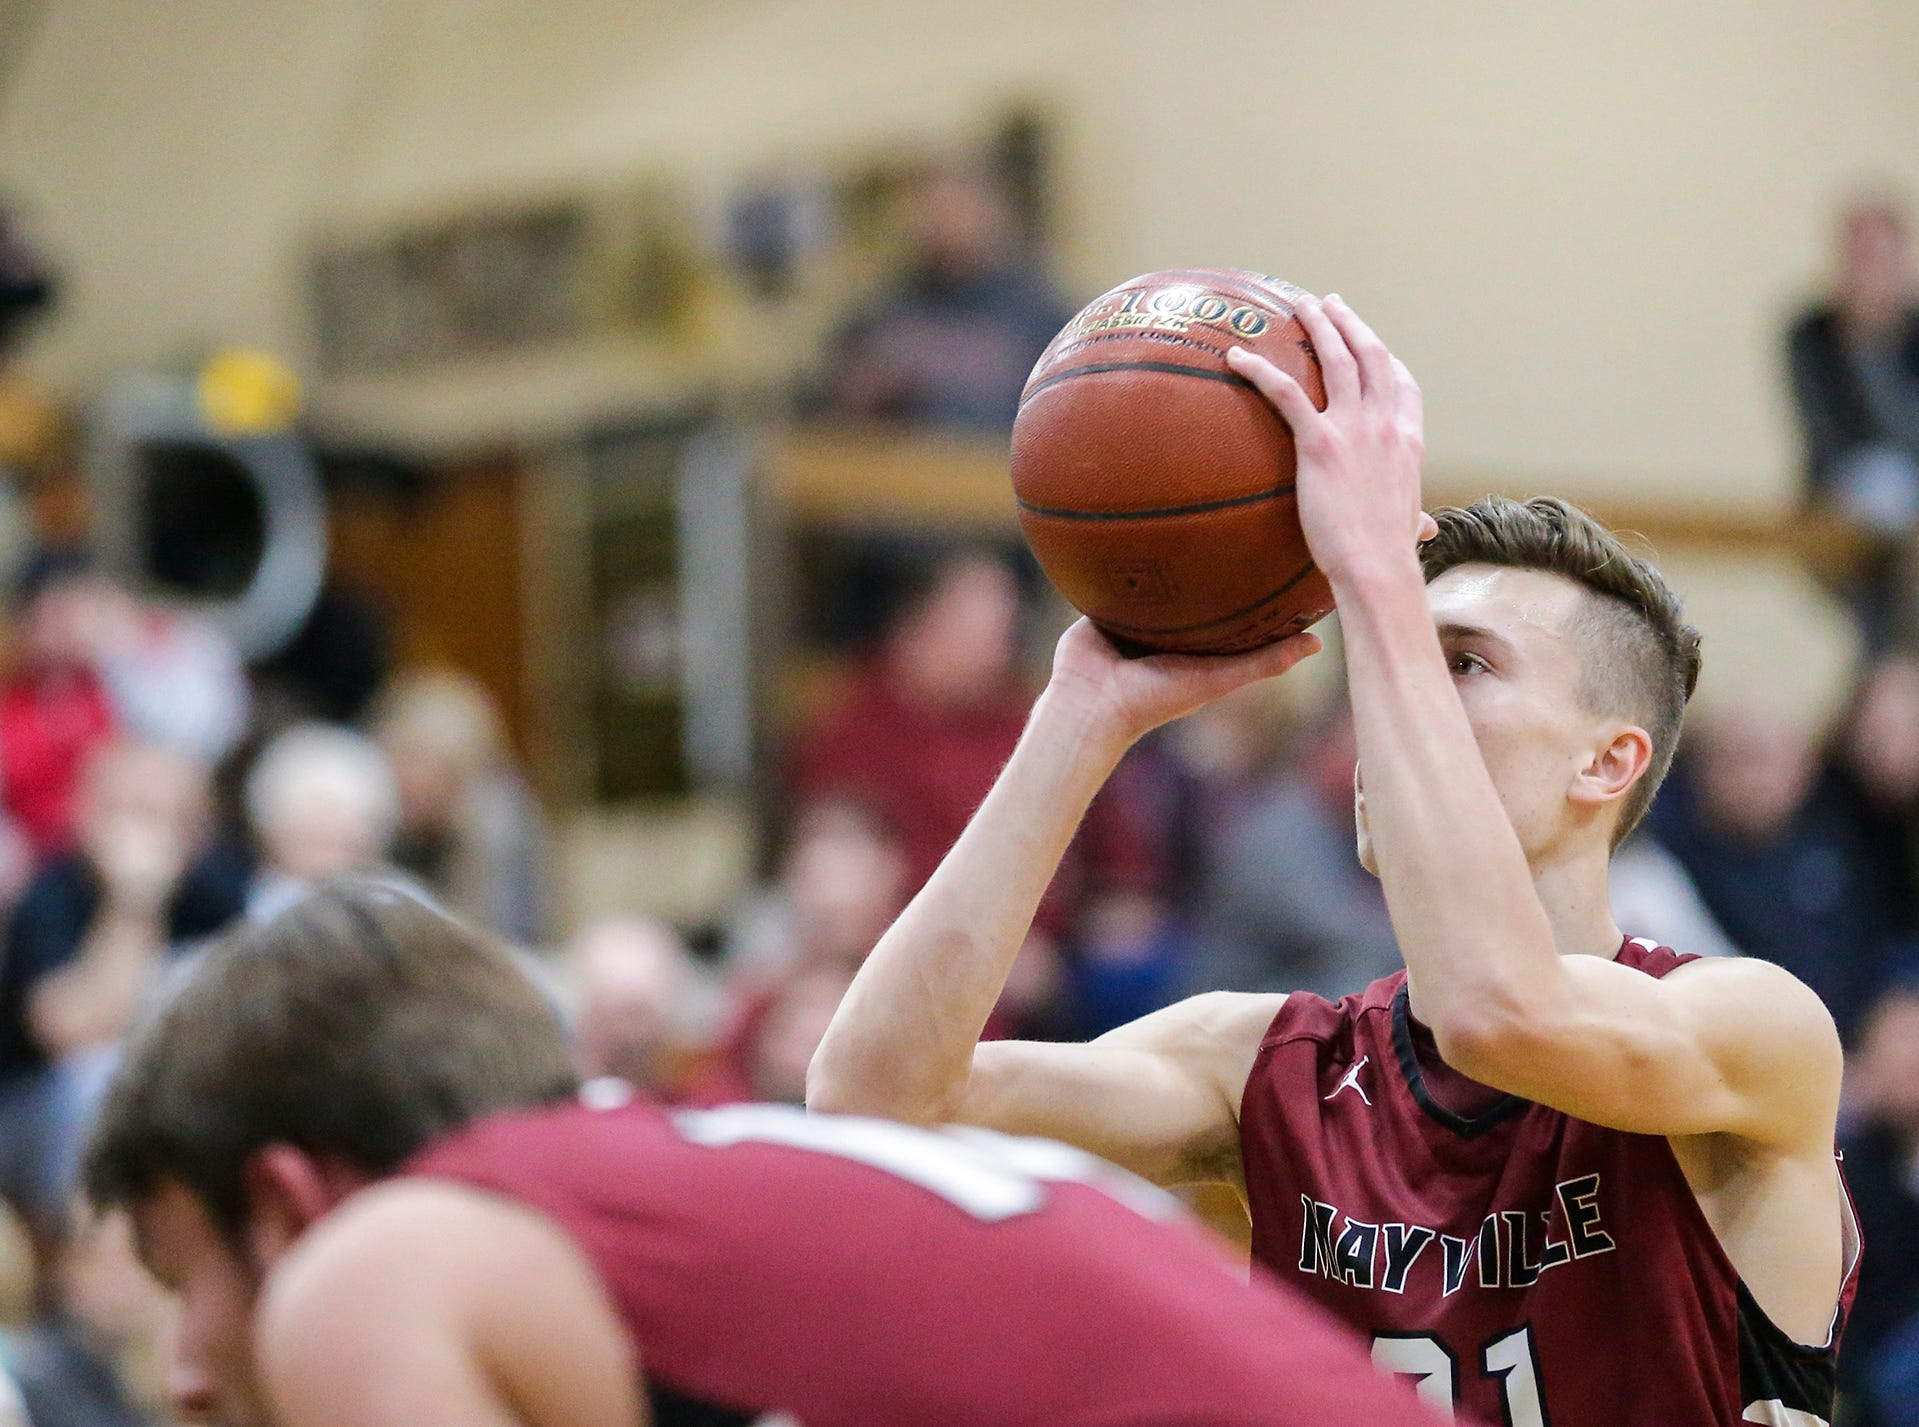 Mayville High School boys basketball's Jackson Mittelstadt throws a free throw against Laconia High School during their game Friday, January 25, 2019 in Rosendale. Laconia won the game 80-54. Doug Raflik/USA TODAY NETWORK-Wisconsin